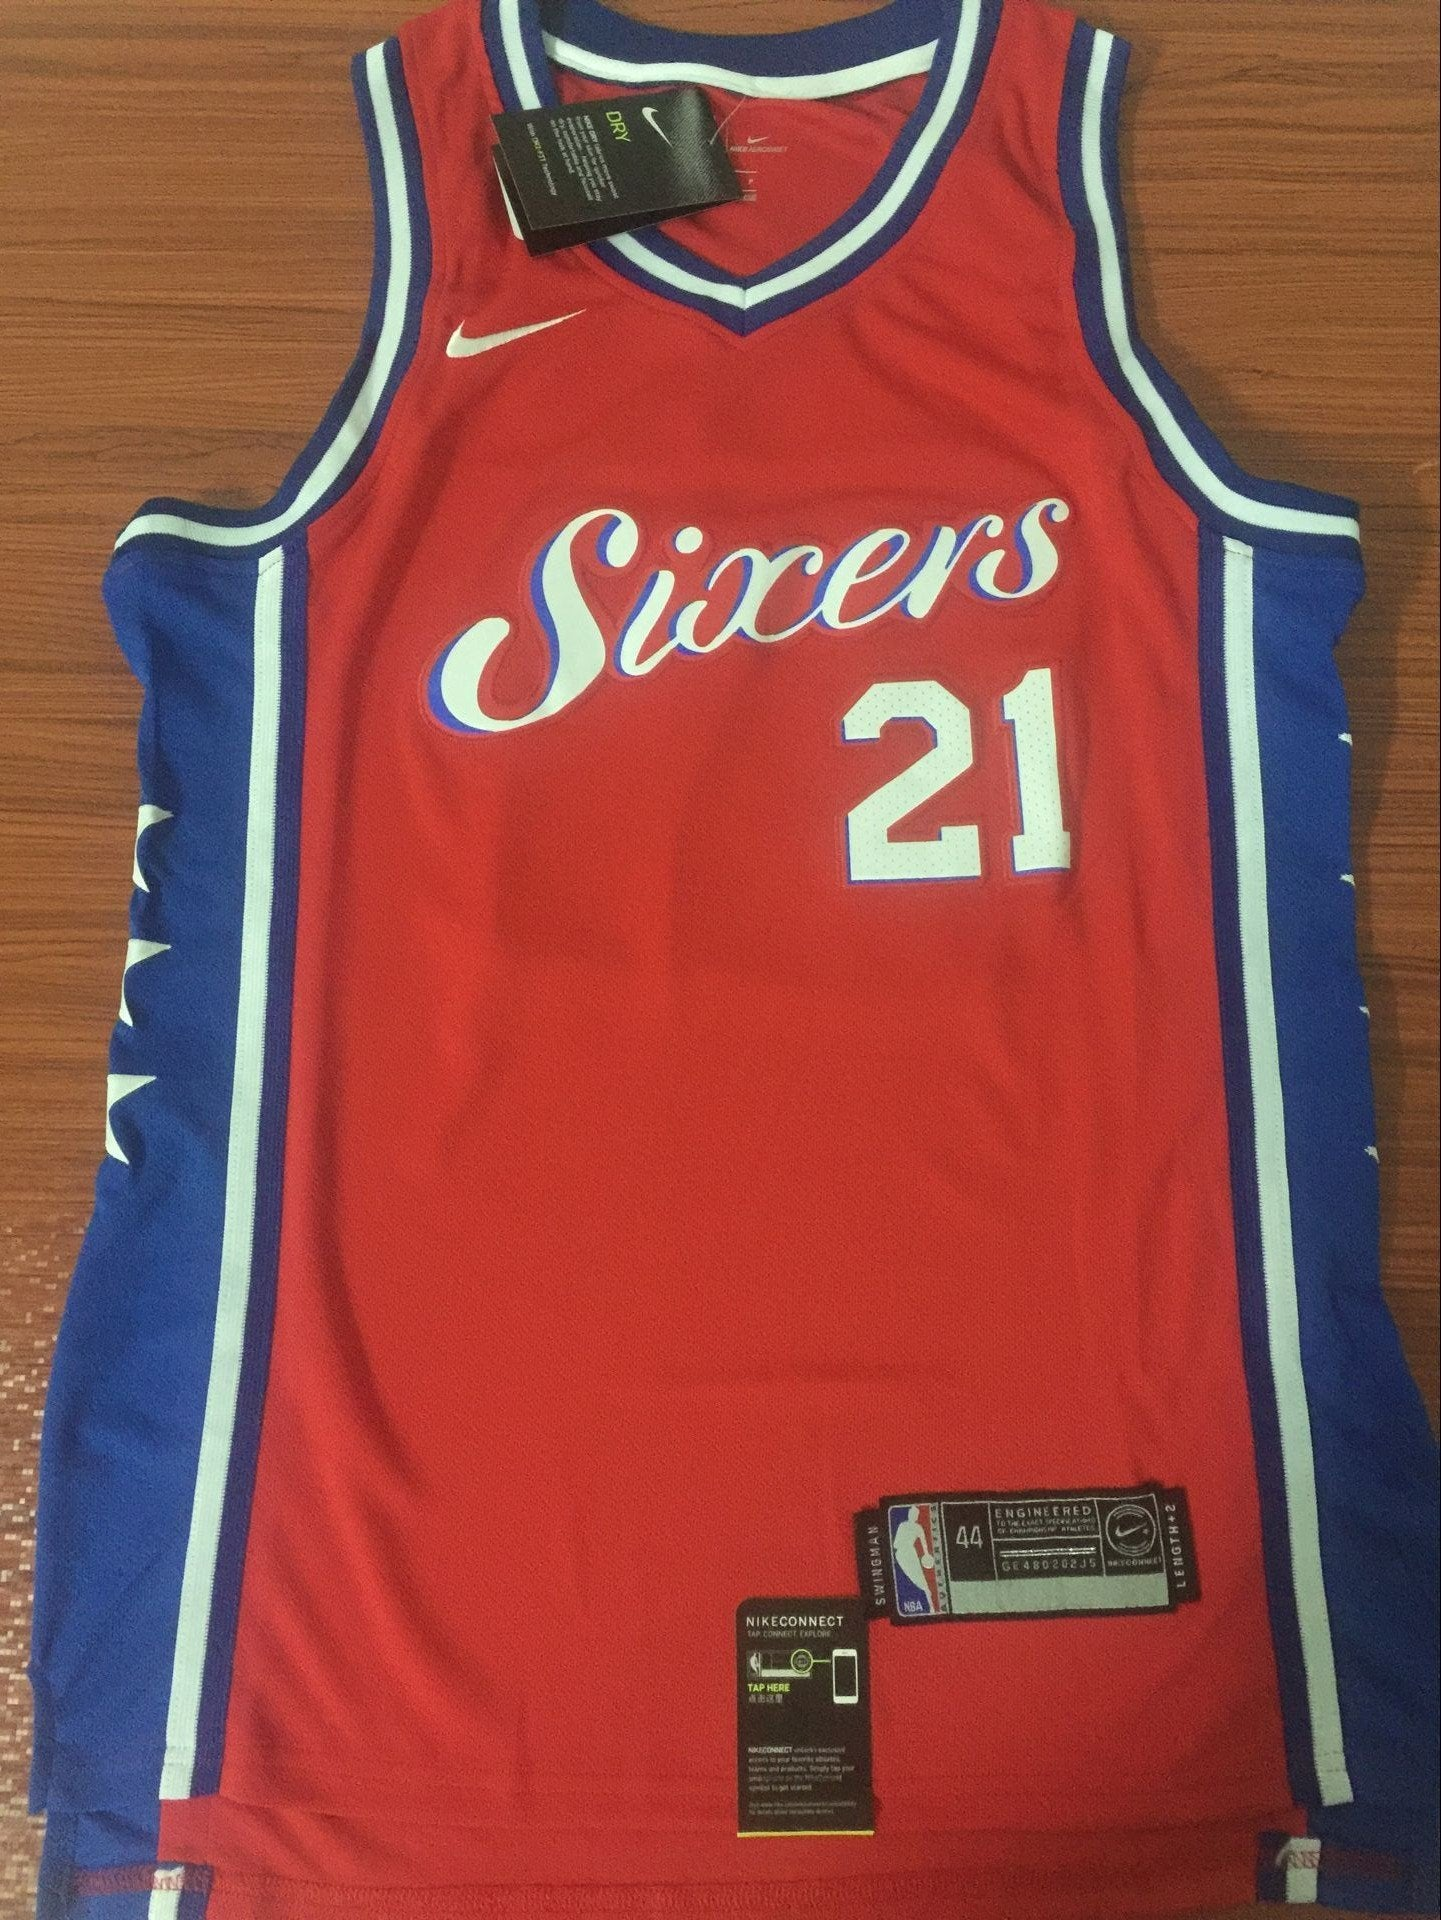 ... order men 21 joel embiid red jersey city edition philadelphia 76ers  jersey fanatics b6305 74175 ad163fc8b